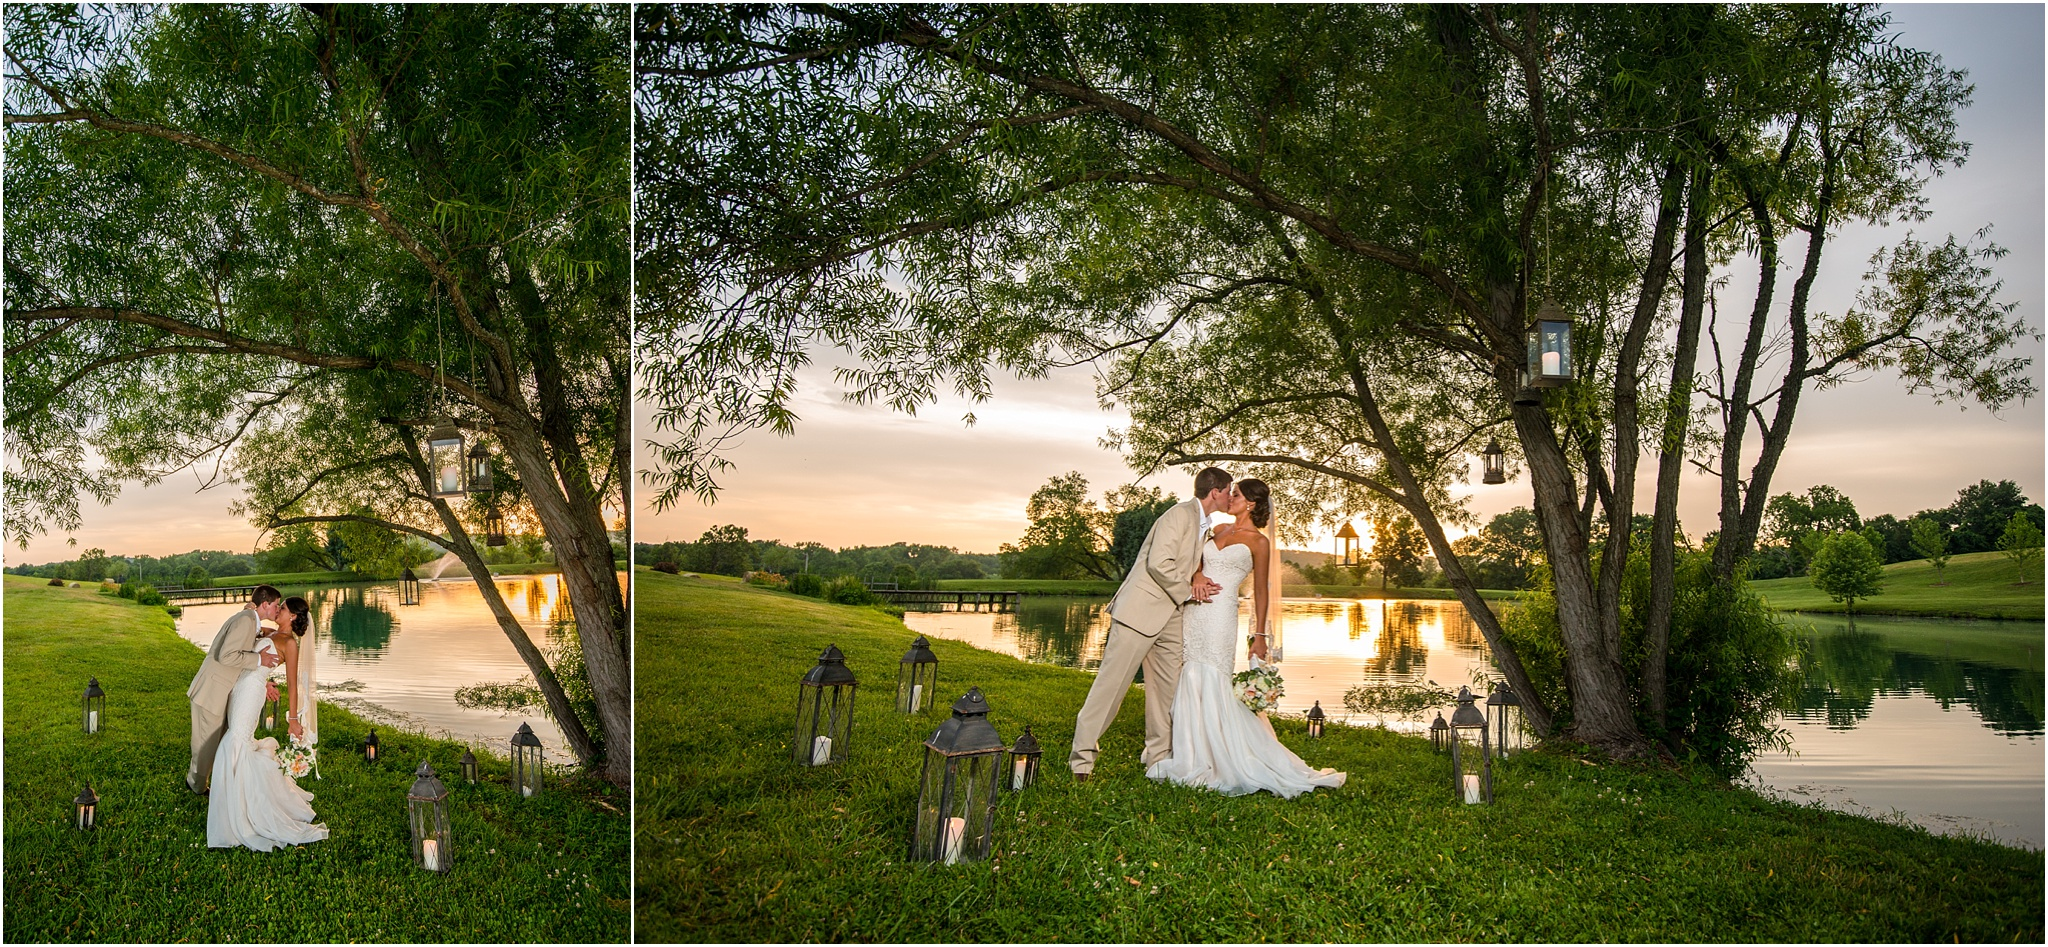 Greg Smit Photography Nashville wedding photographer Mint Springs Farm 22